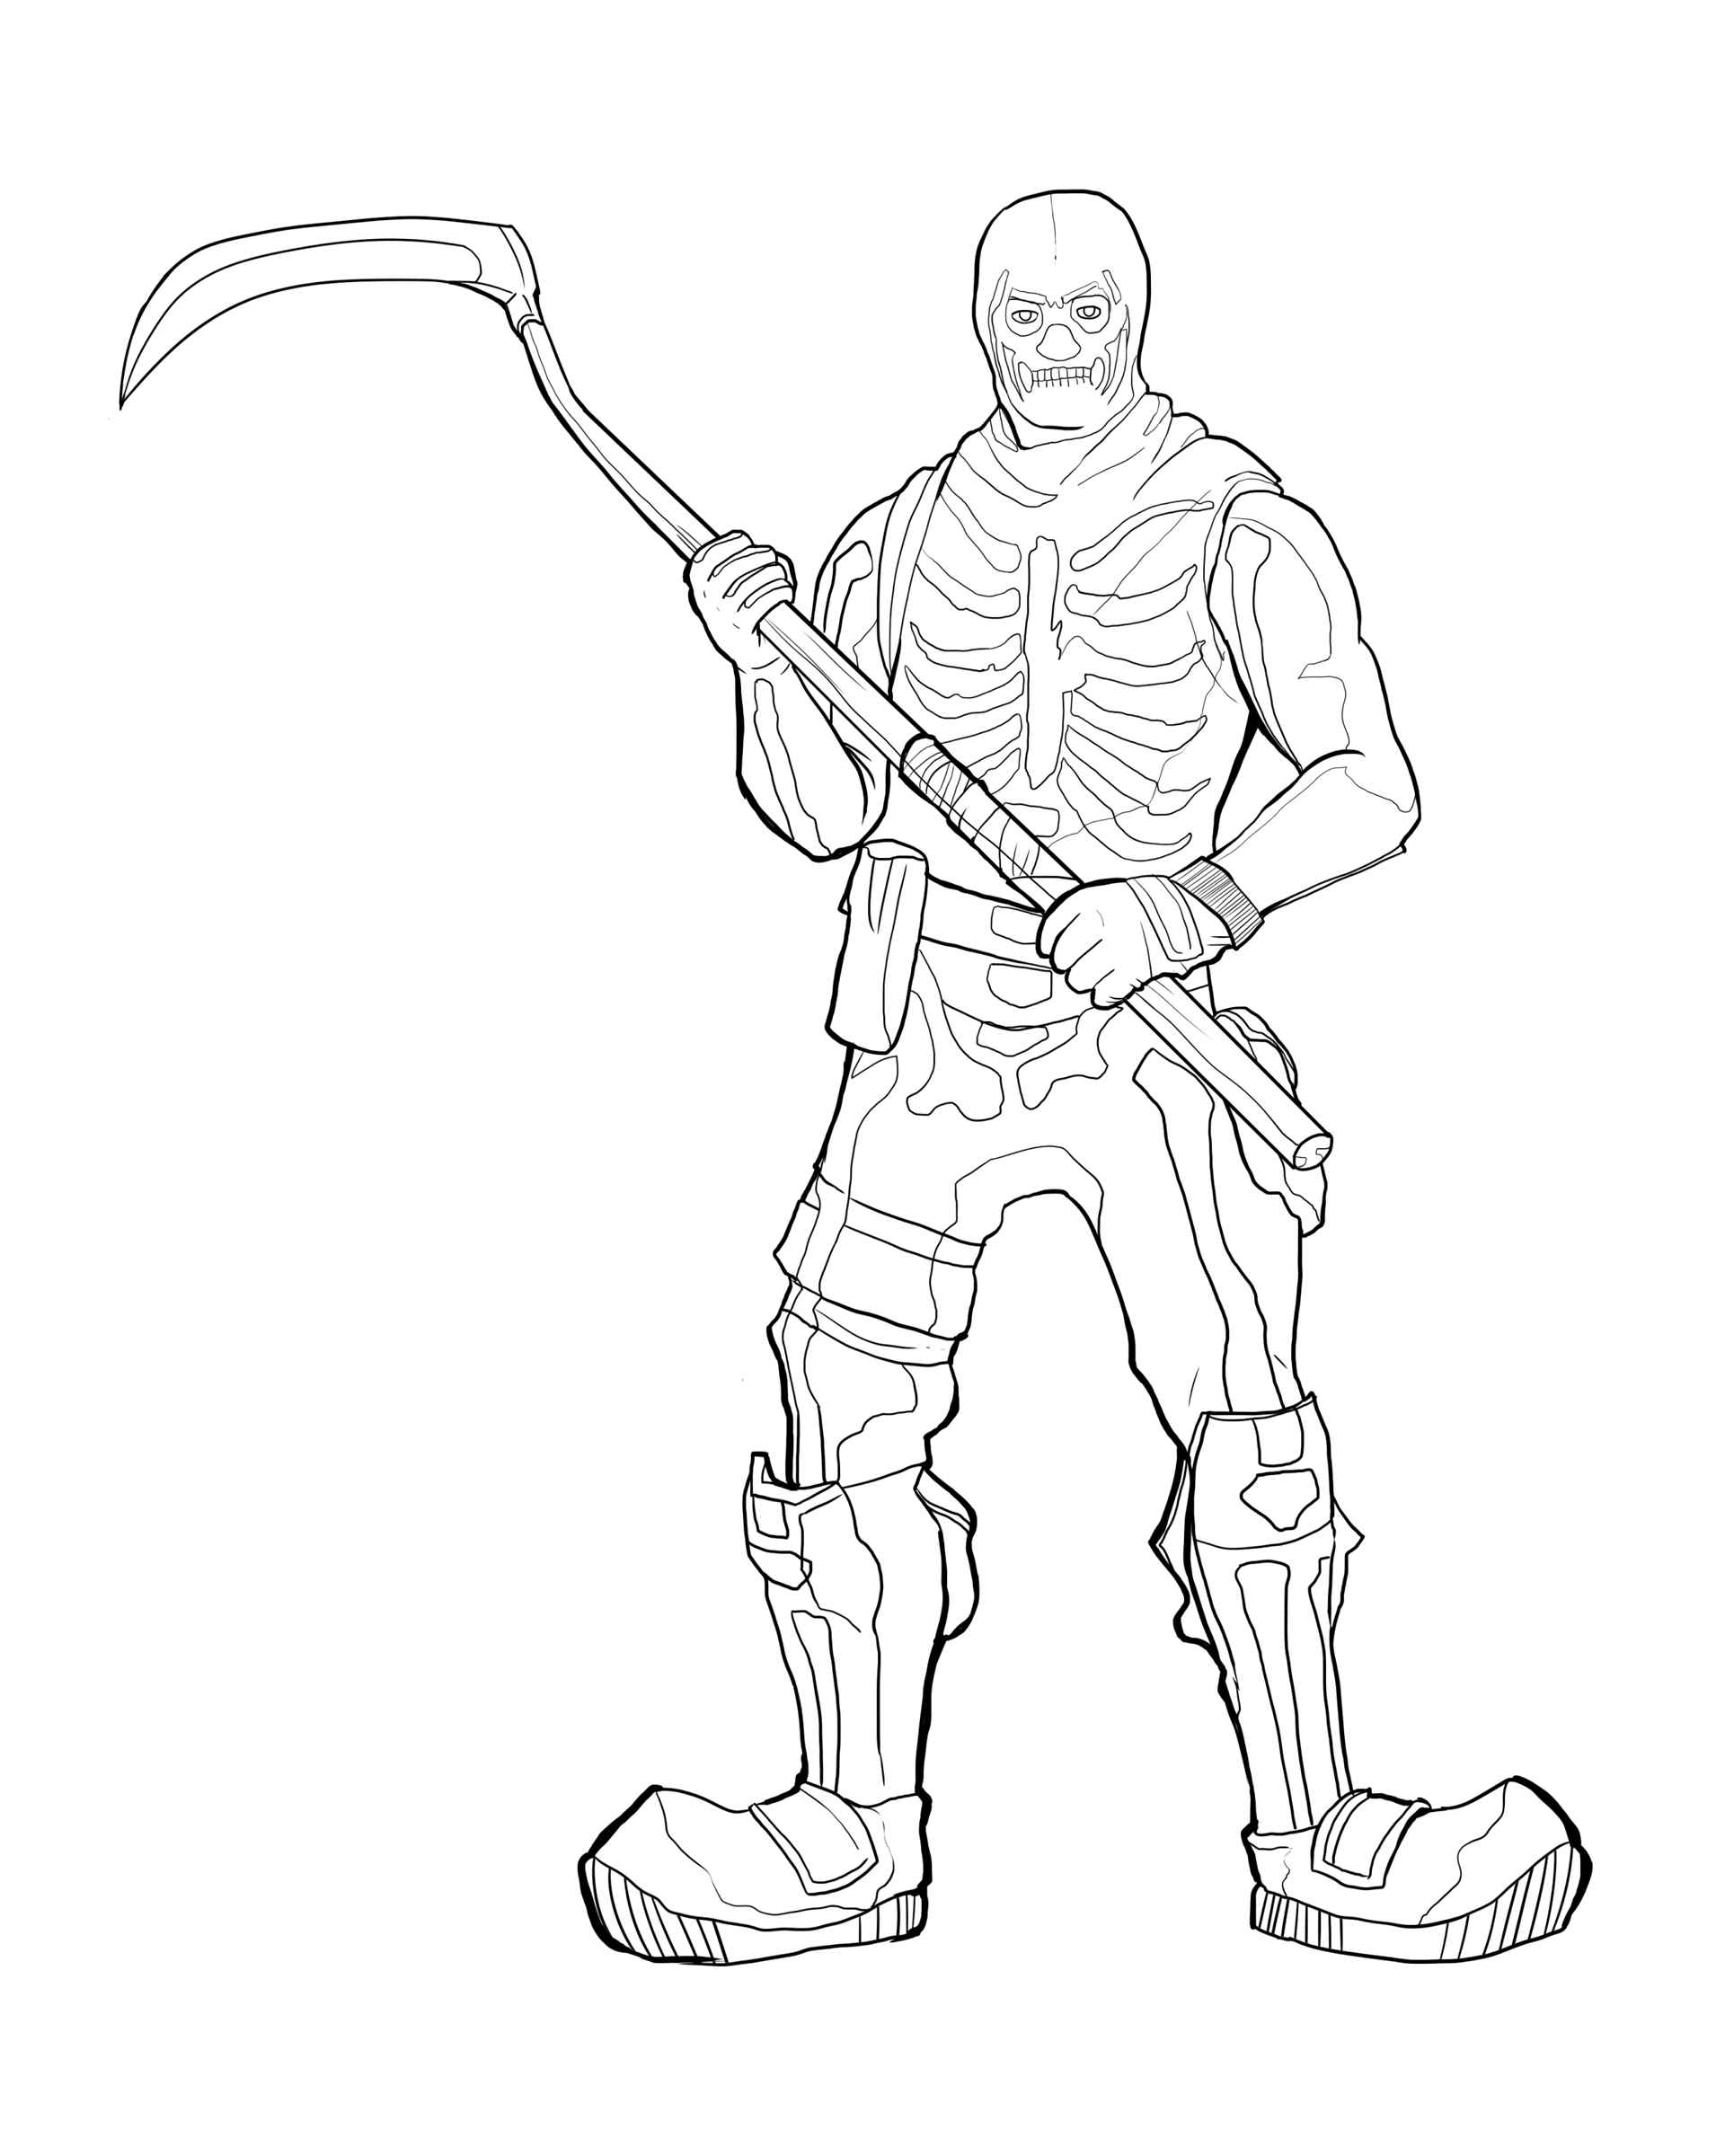 Halloween Scythe Skin From The Game Fortnite Coloring Page